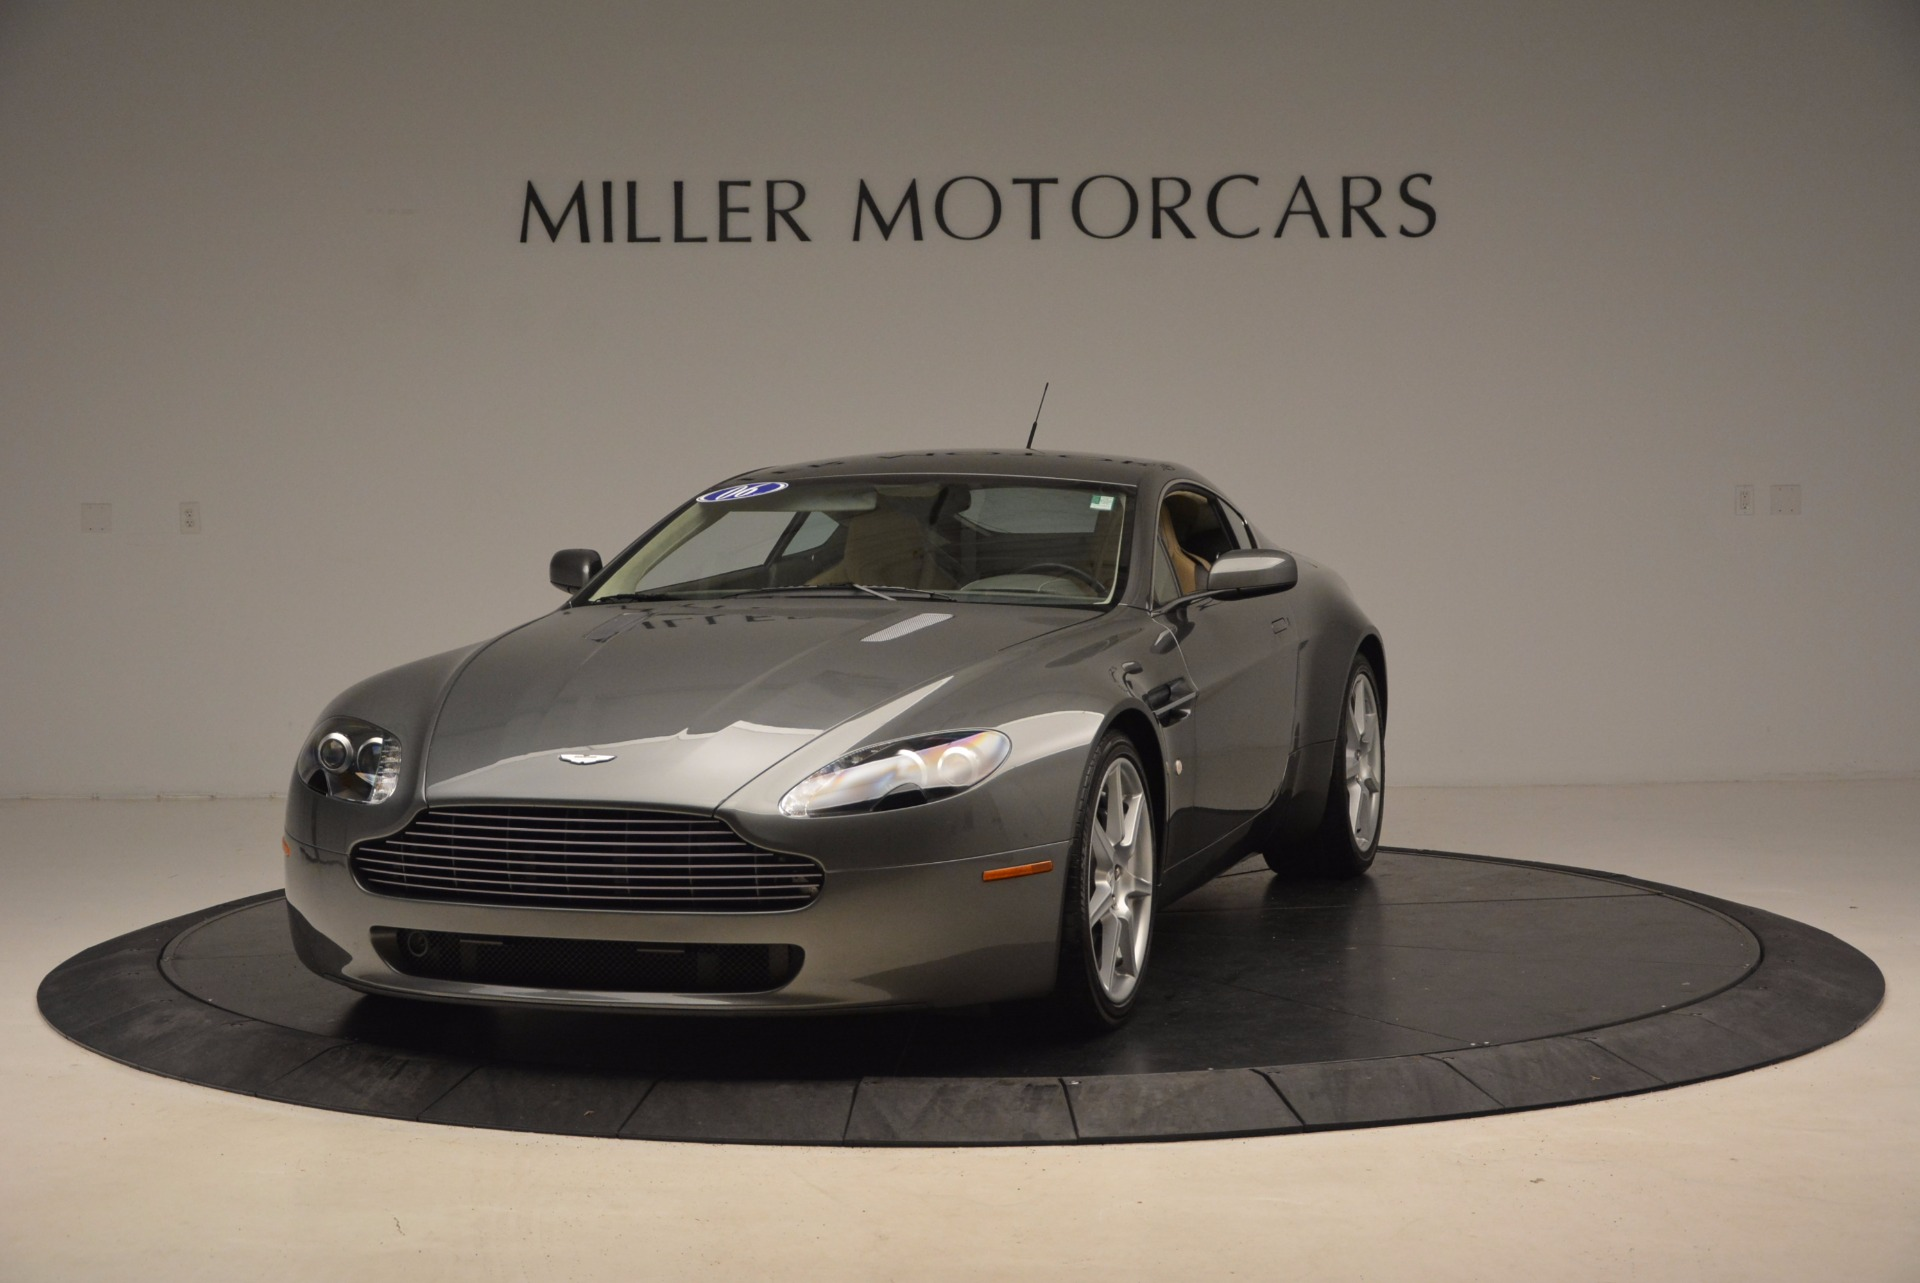 Used 2006 Aston Martin V8 Vantage for sale Sold at Rolls-Royce Motor Cars Greenwich in Greenwich CT 06830 1